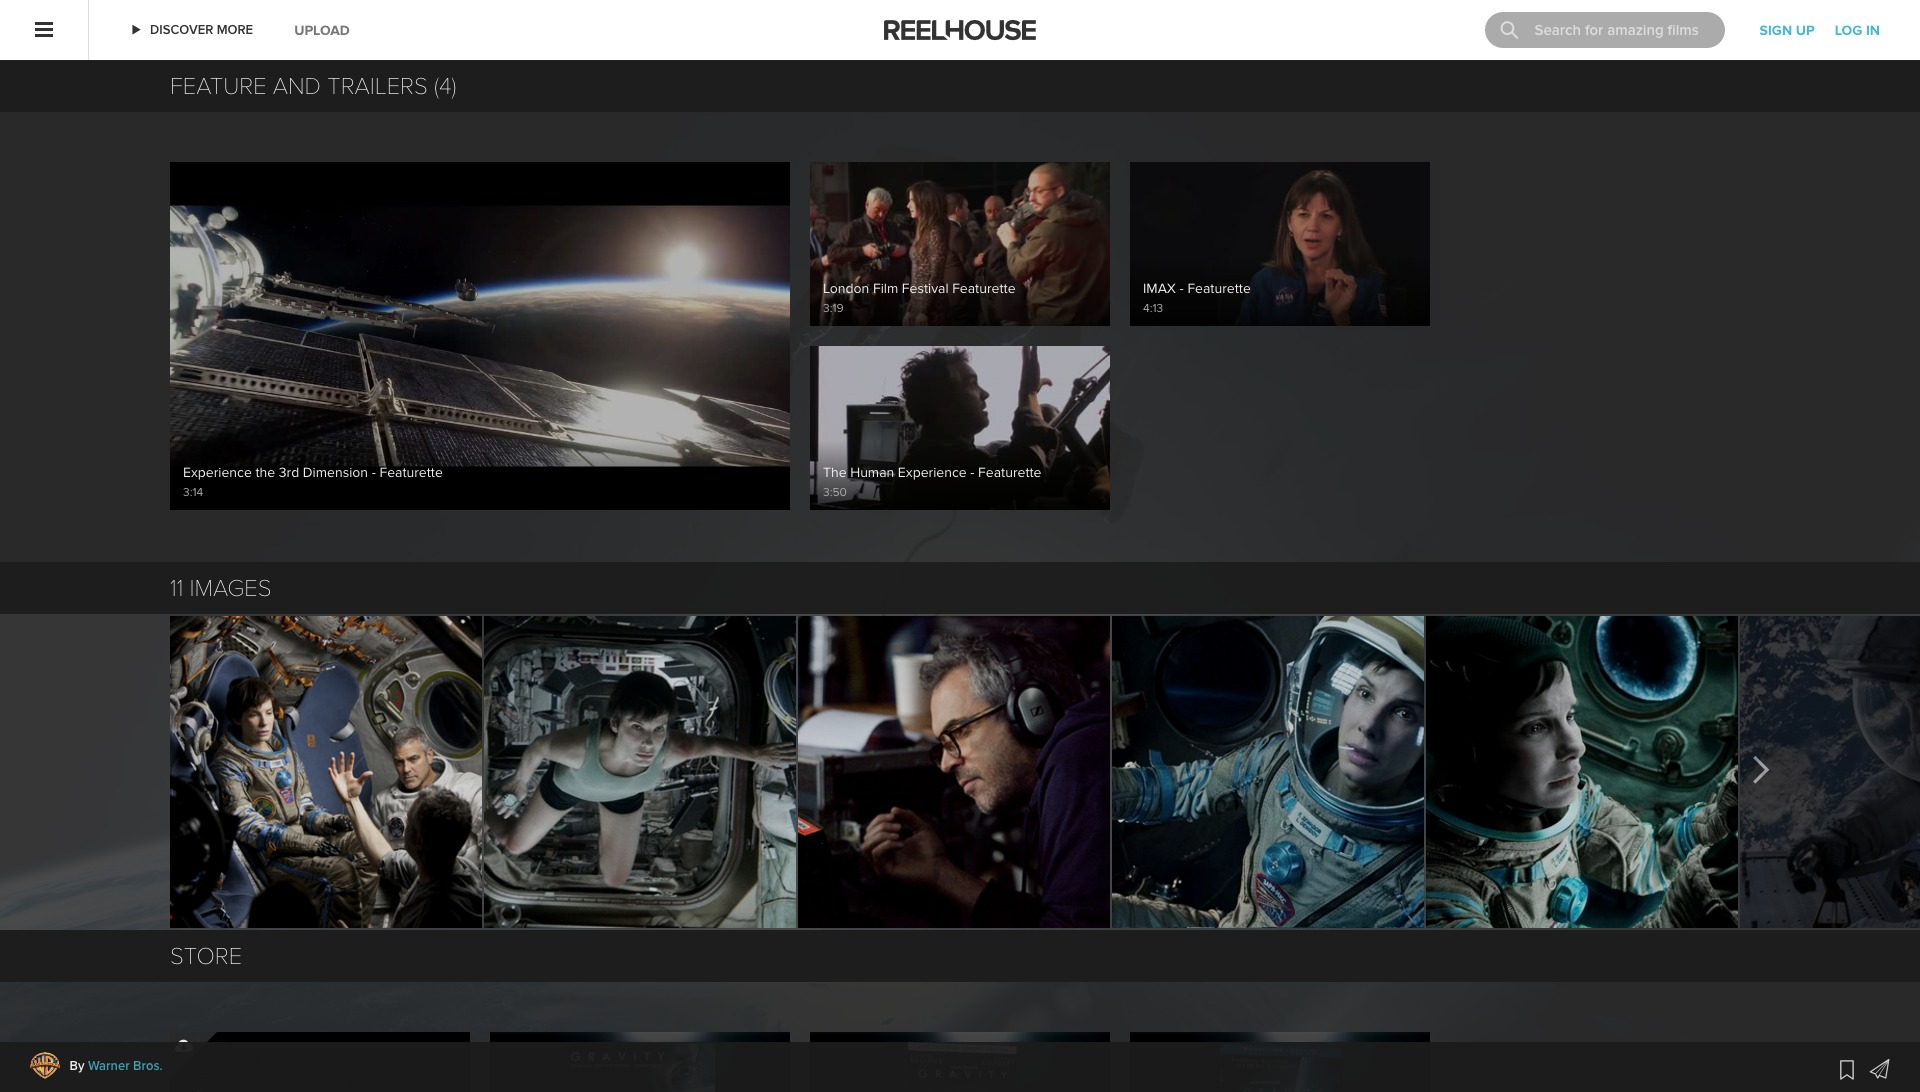 Film Page Content